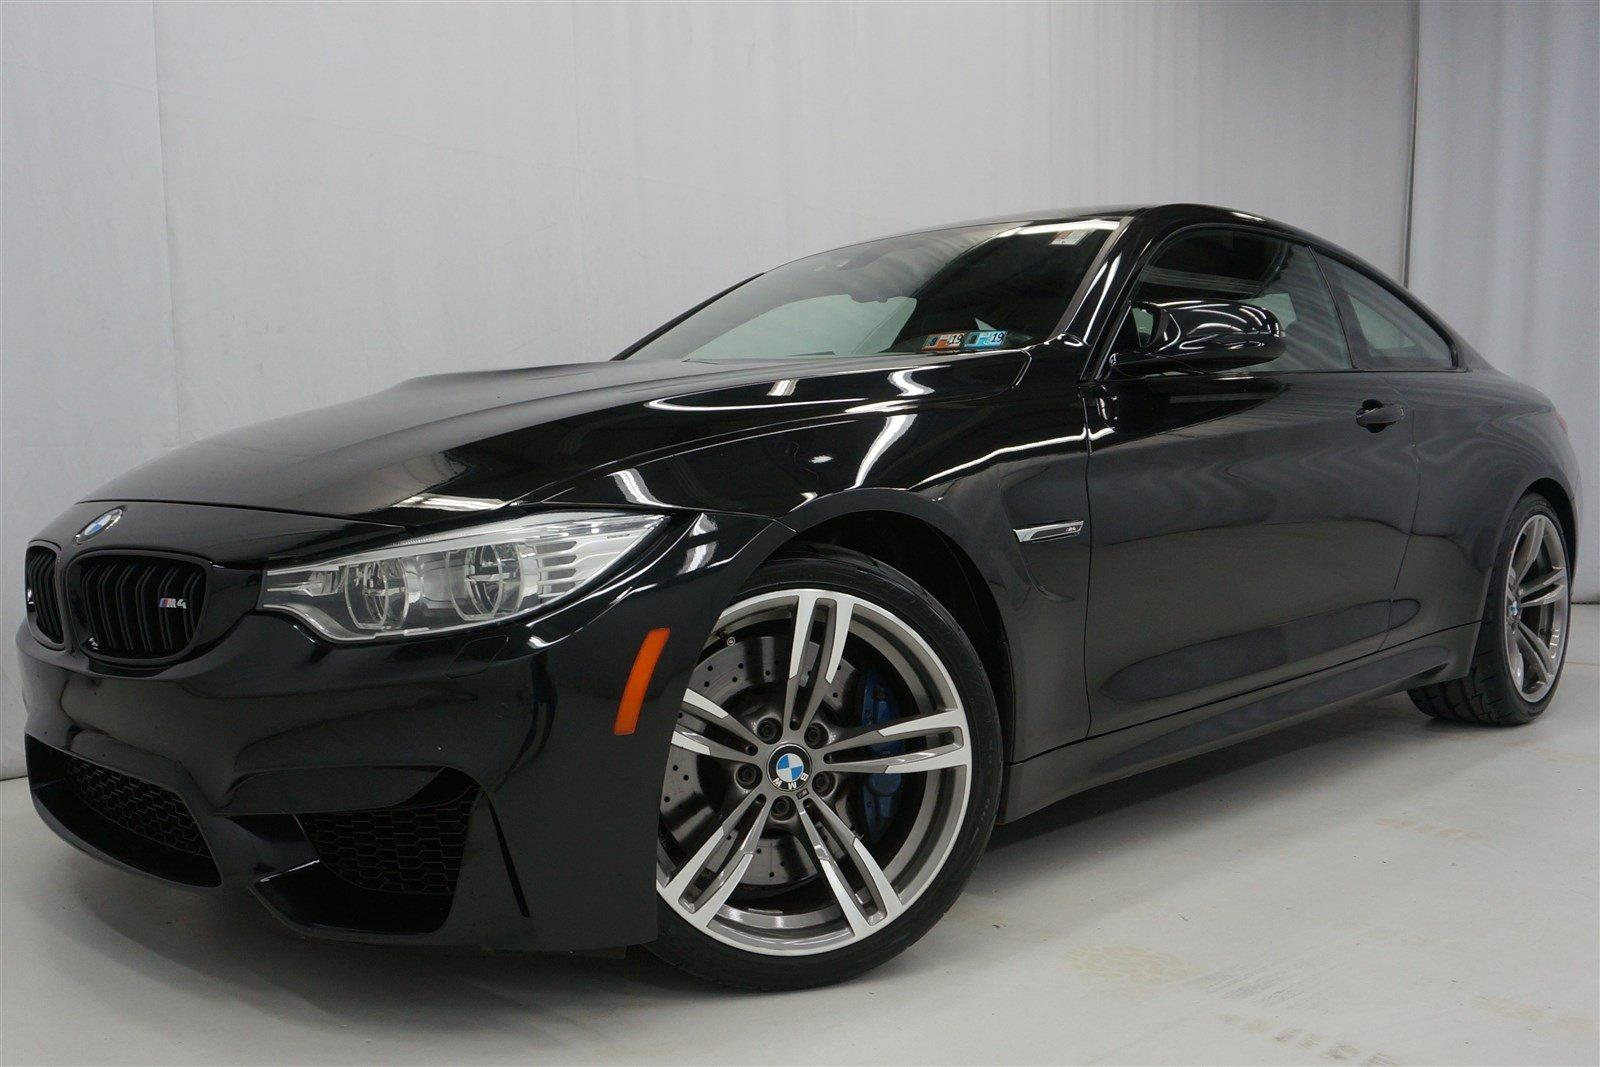 2015 bmw m4 stock # k331782 for sale near king of prussia, pa | pa